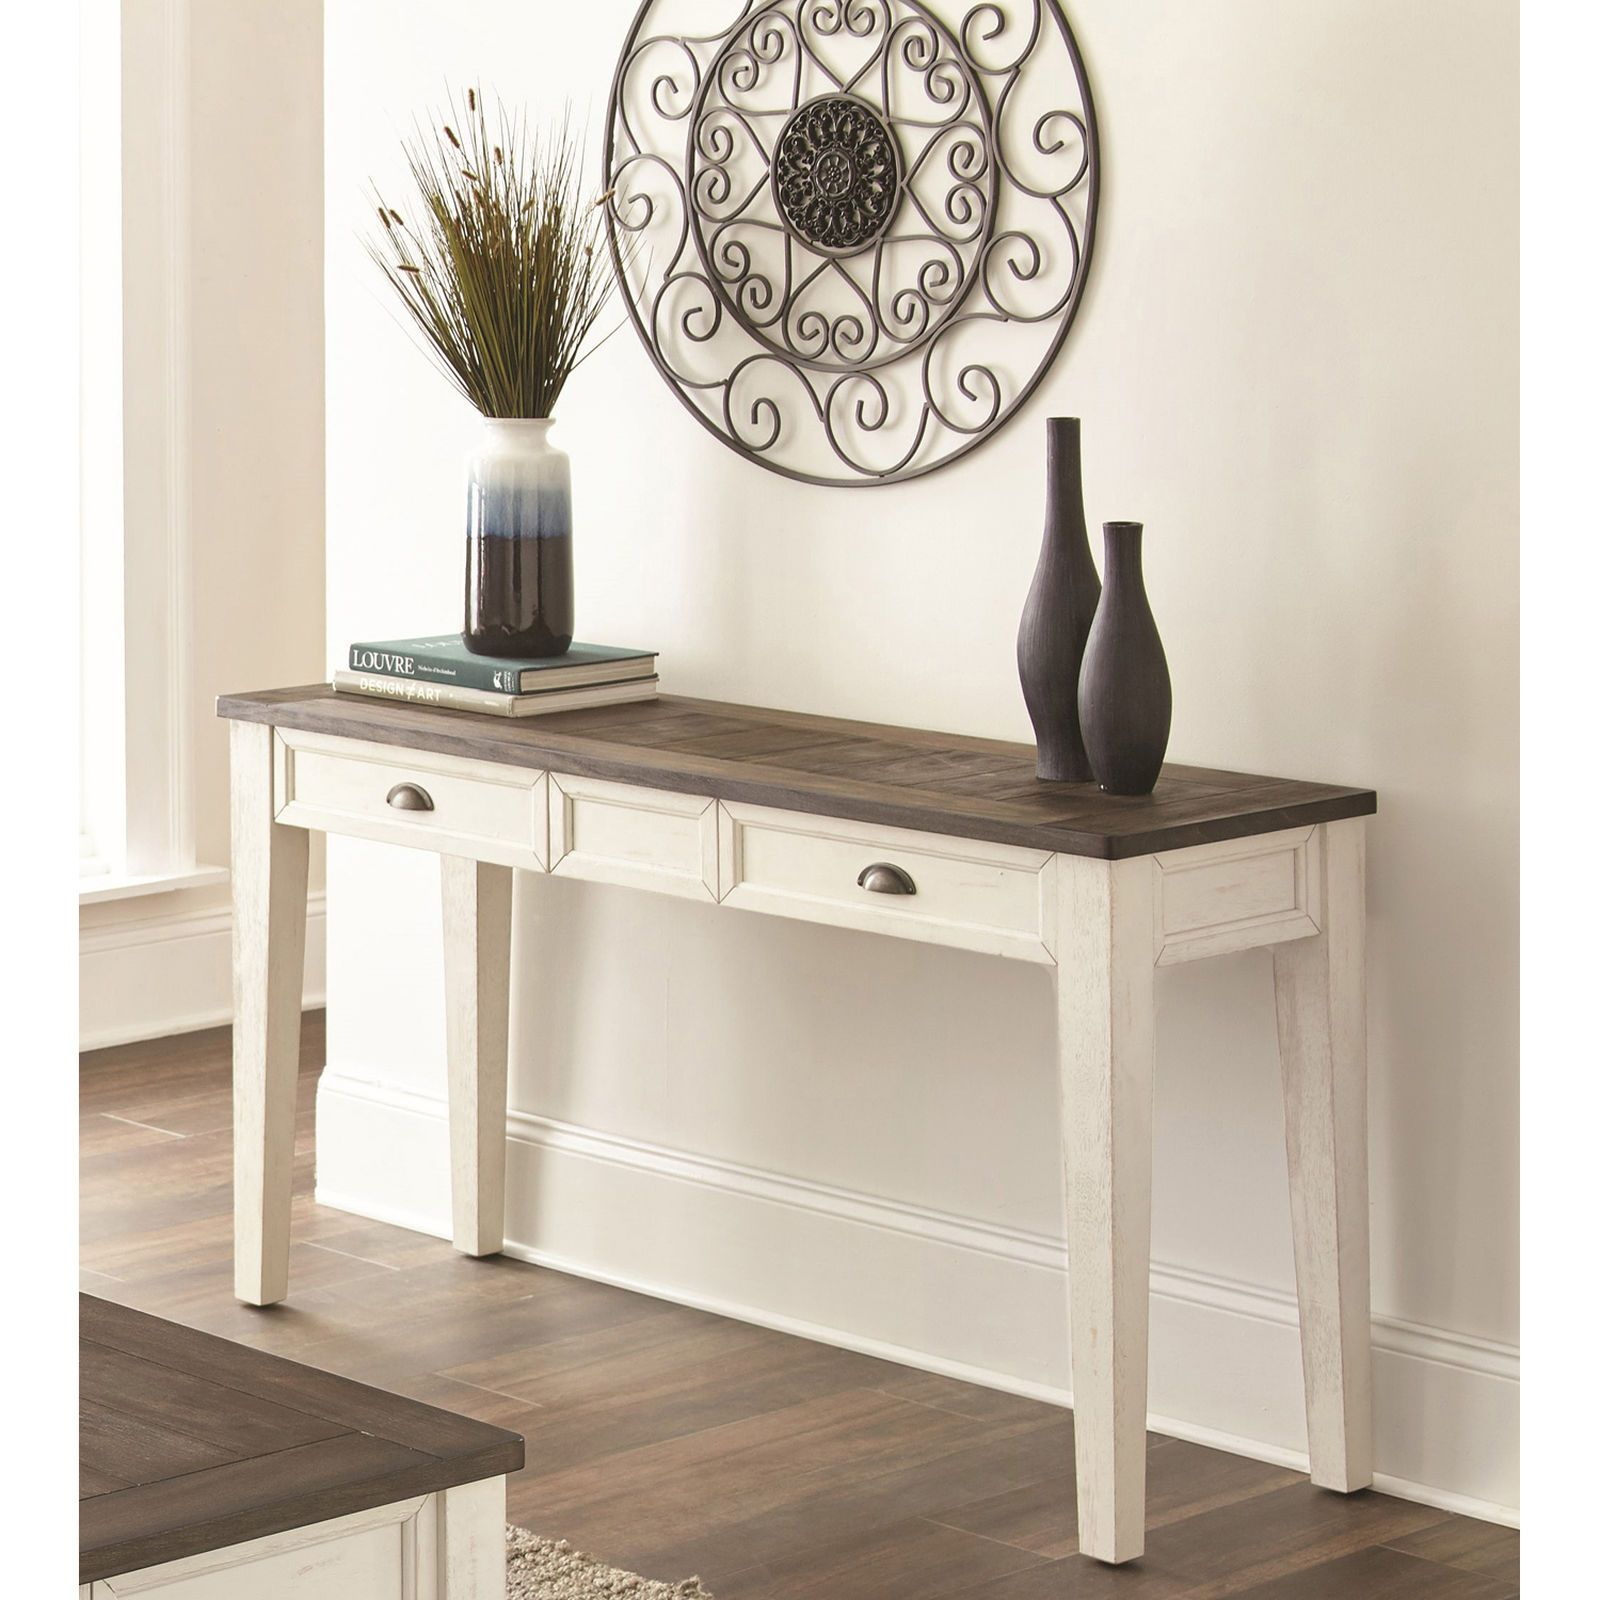 Carly Dark Oak White Sofa Table Mobilier De Salon Deco Entree Deco